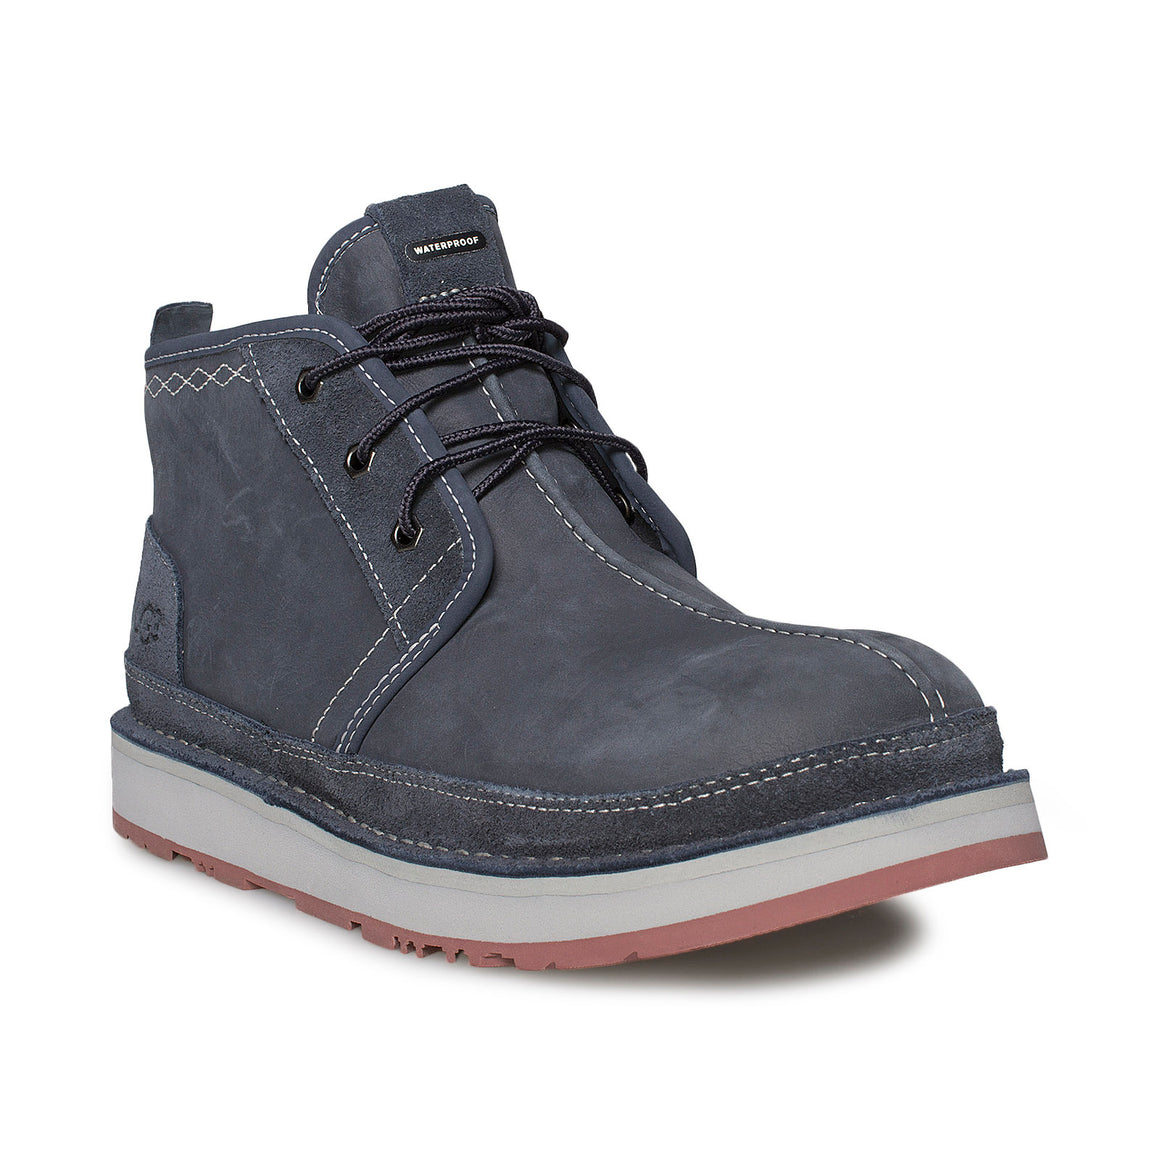 UGG Avalanche Neumel True Navy Boots - Men's